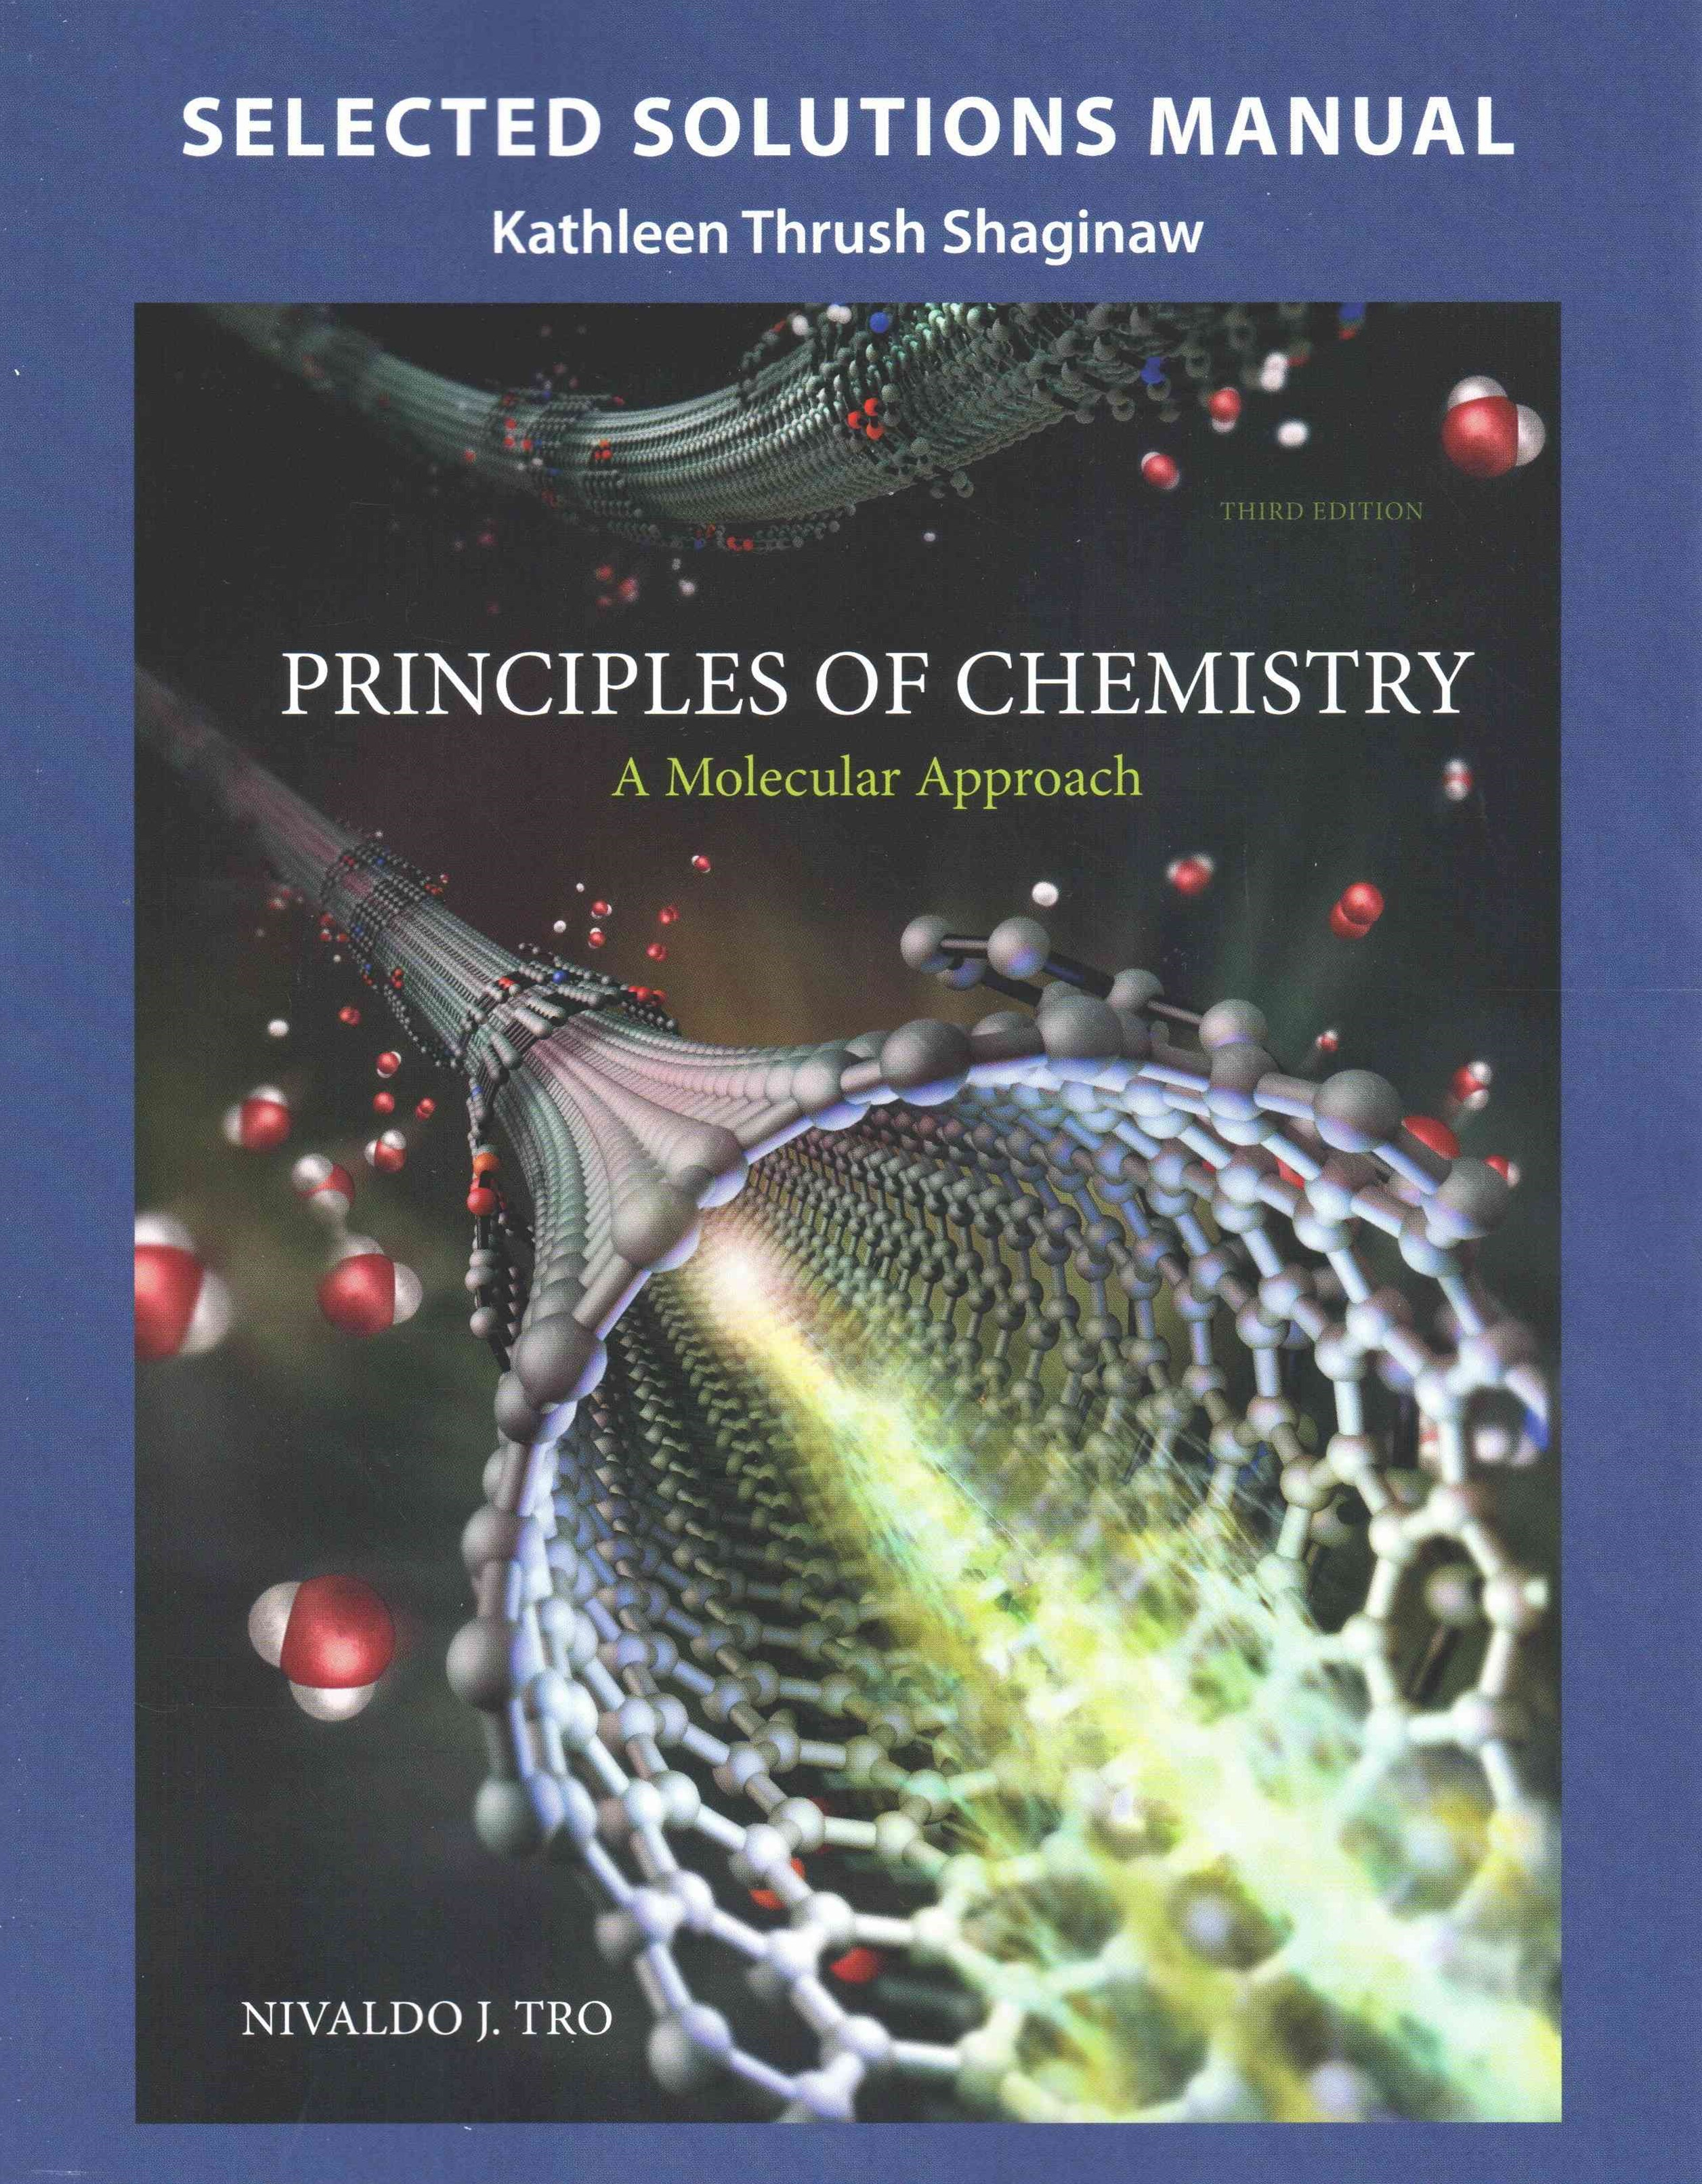 Selected Solution Manual for Principles of Chemistry